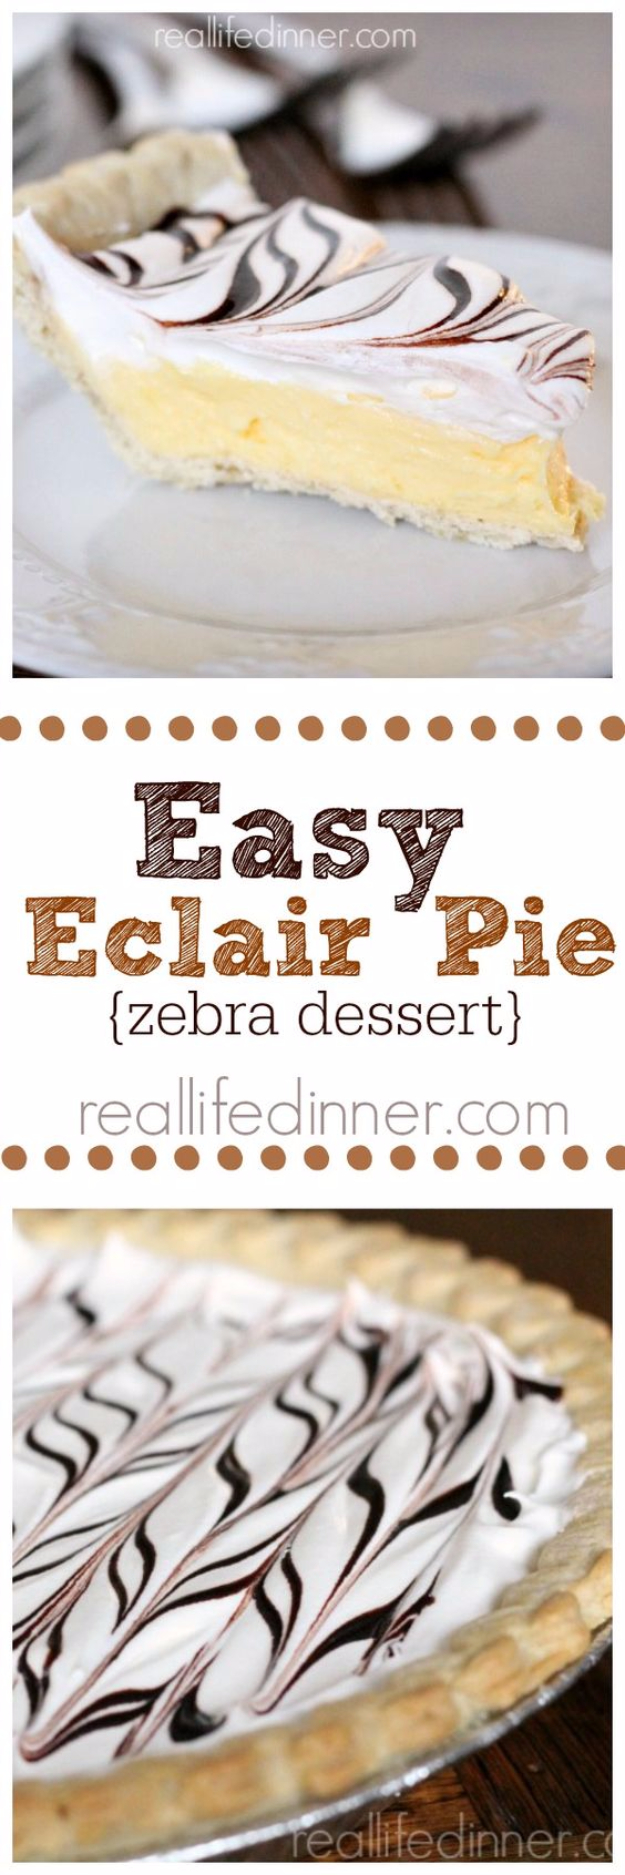 Best Pie Recipes - Easy Eclair Pie - Easy Pie Recipes From Scratch for Pecan, Apple, Banana, Pumpkin, Fruit, Peach and Chocolate Pies. Yummy Graham Cracker Crusts and Homemade Meringue #recipes #dessert